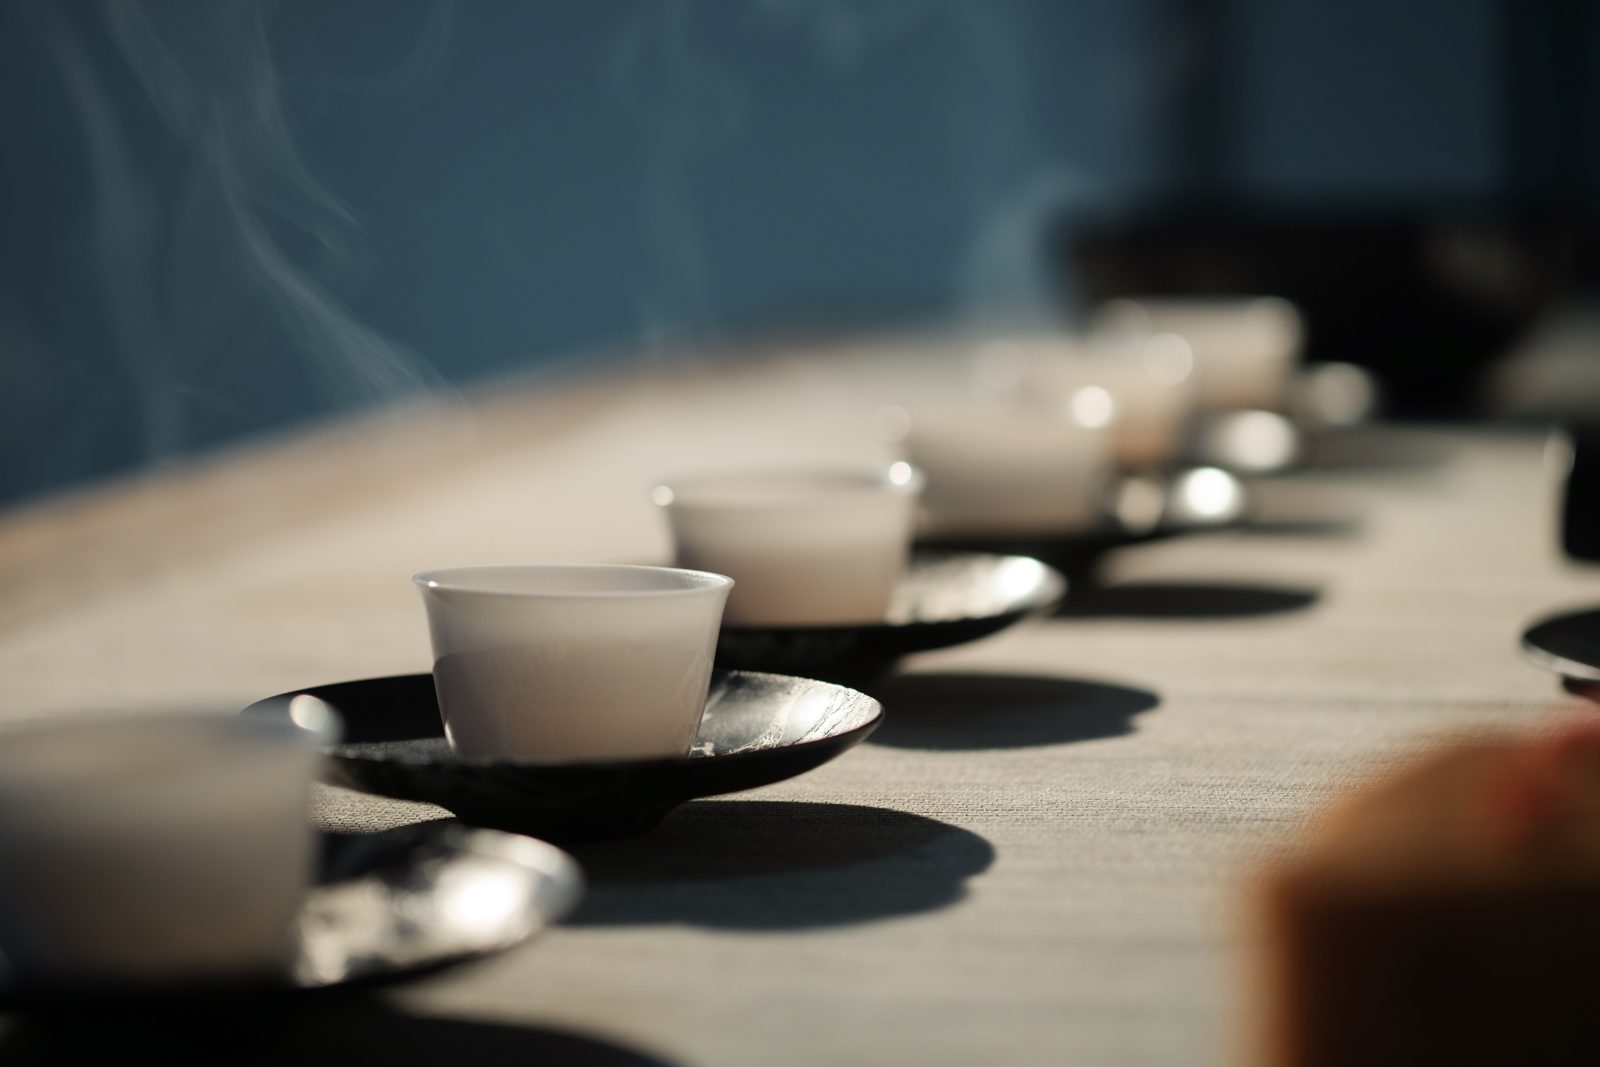 Gong fu tea service involves small cups like these, and small tea pots, and short brewing times.